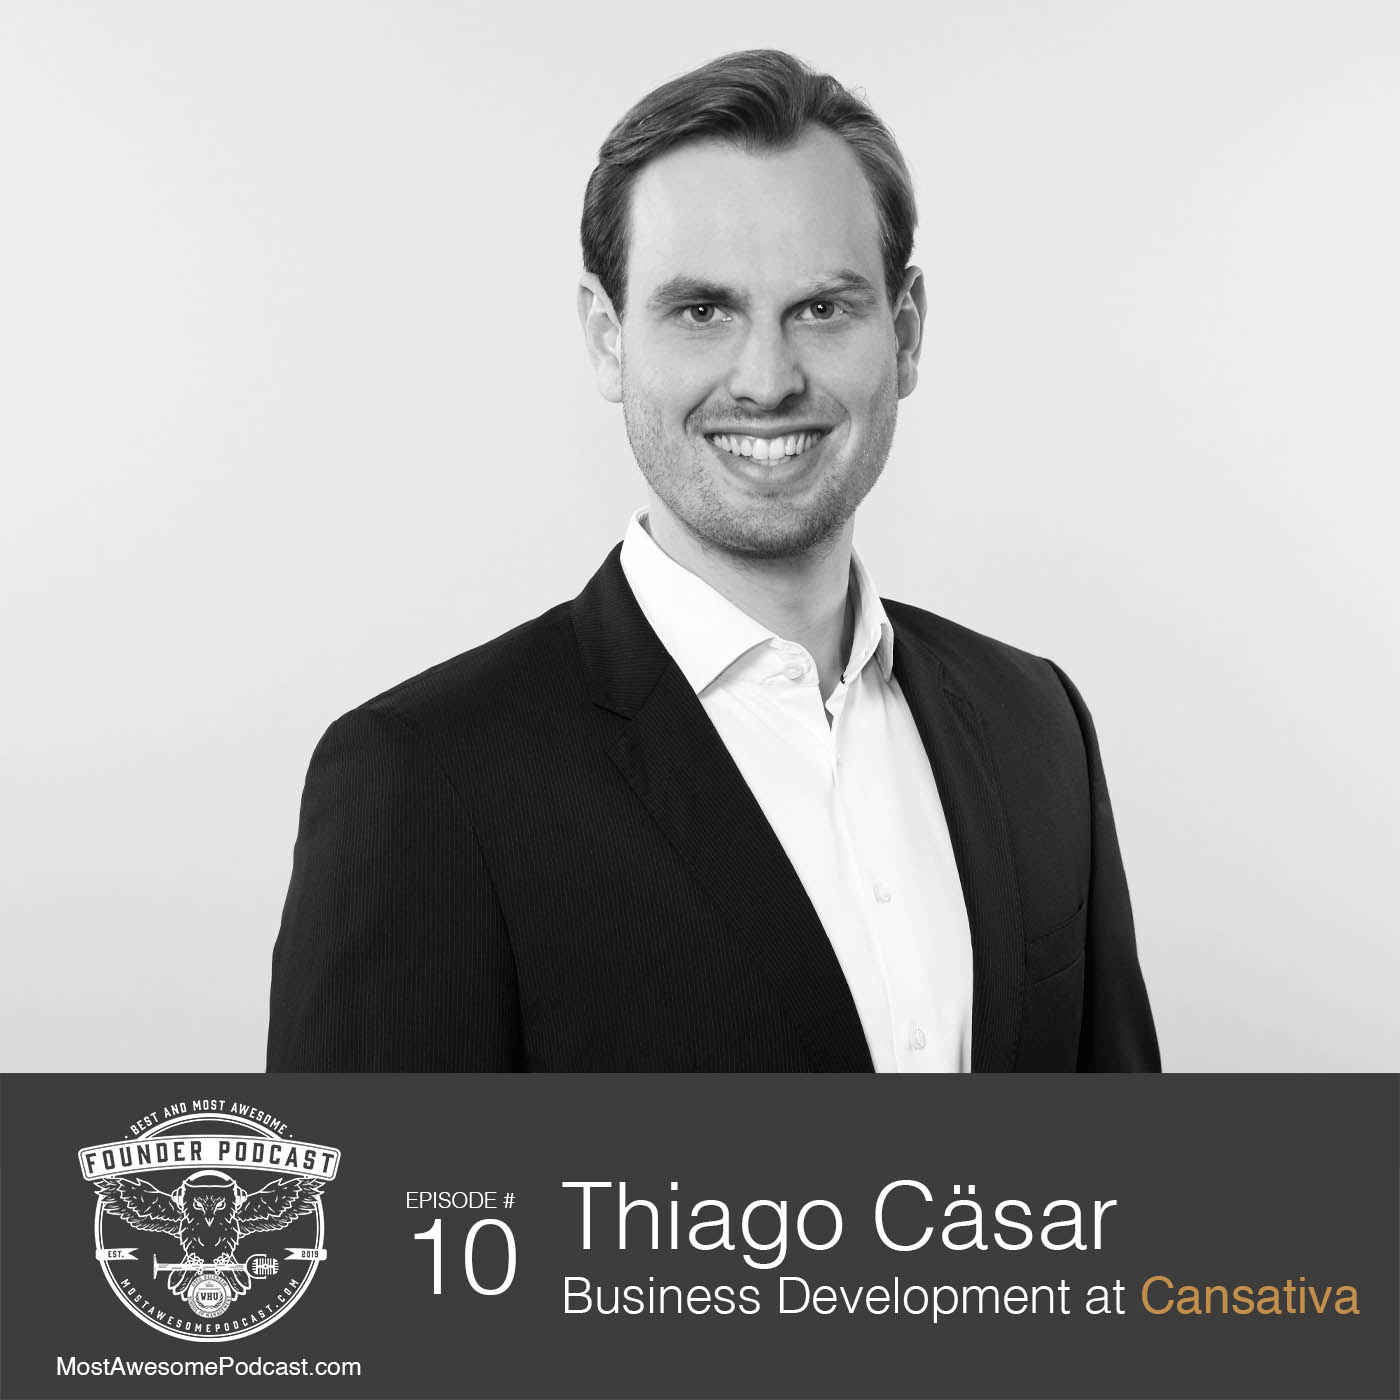 Ep. 10 - Medical Cannabis in Germany with Thiago Cäsar